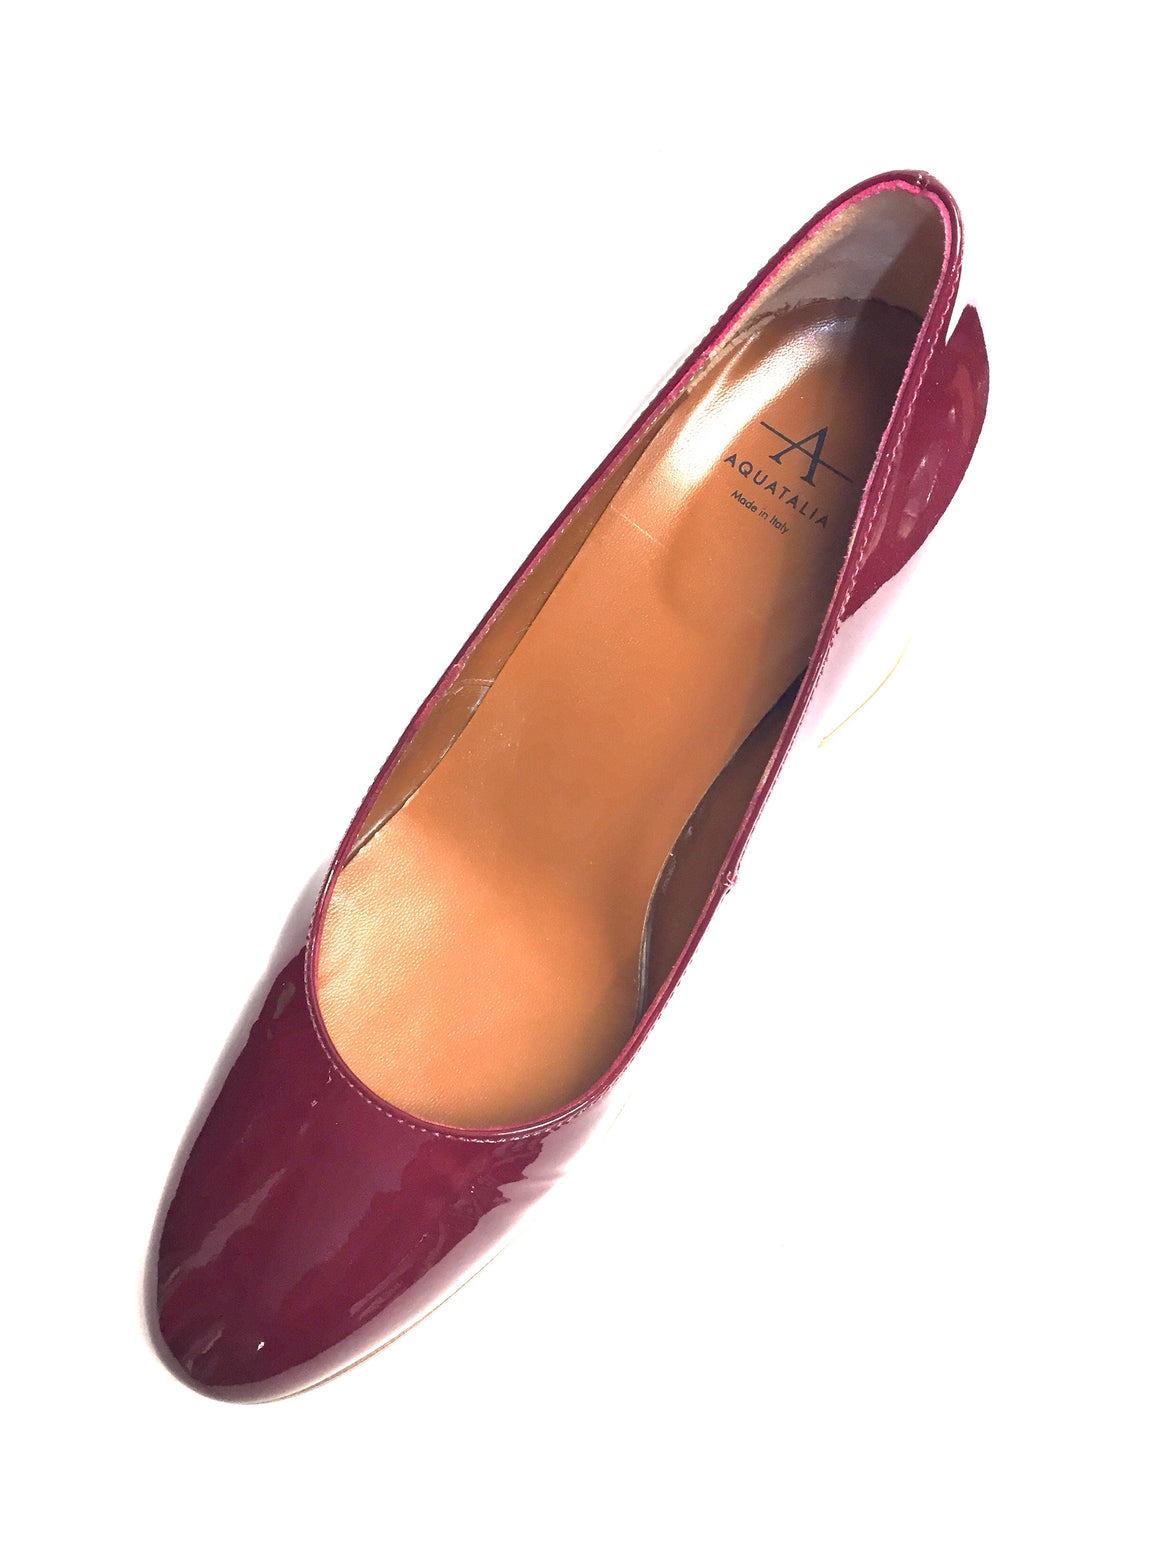 AQUATALIA Cranberry-Red Patent Leather Block Heel Pumps Shoes Size: EU 39 / US 9 M